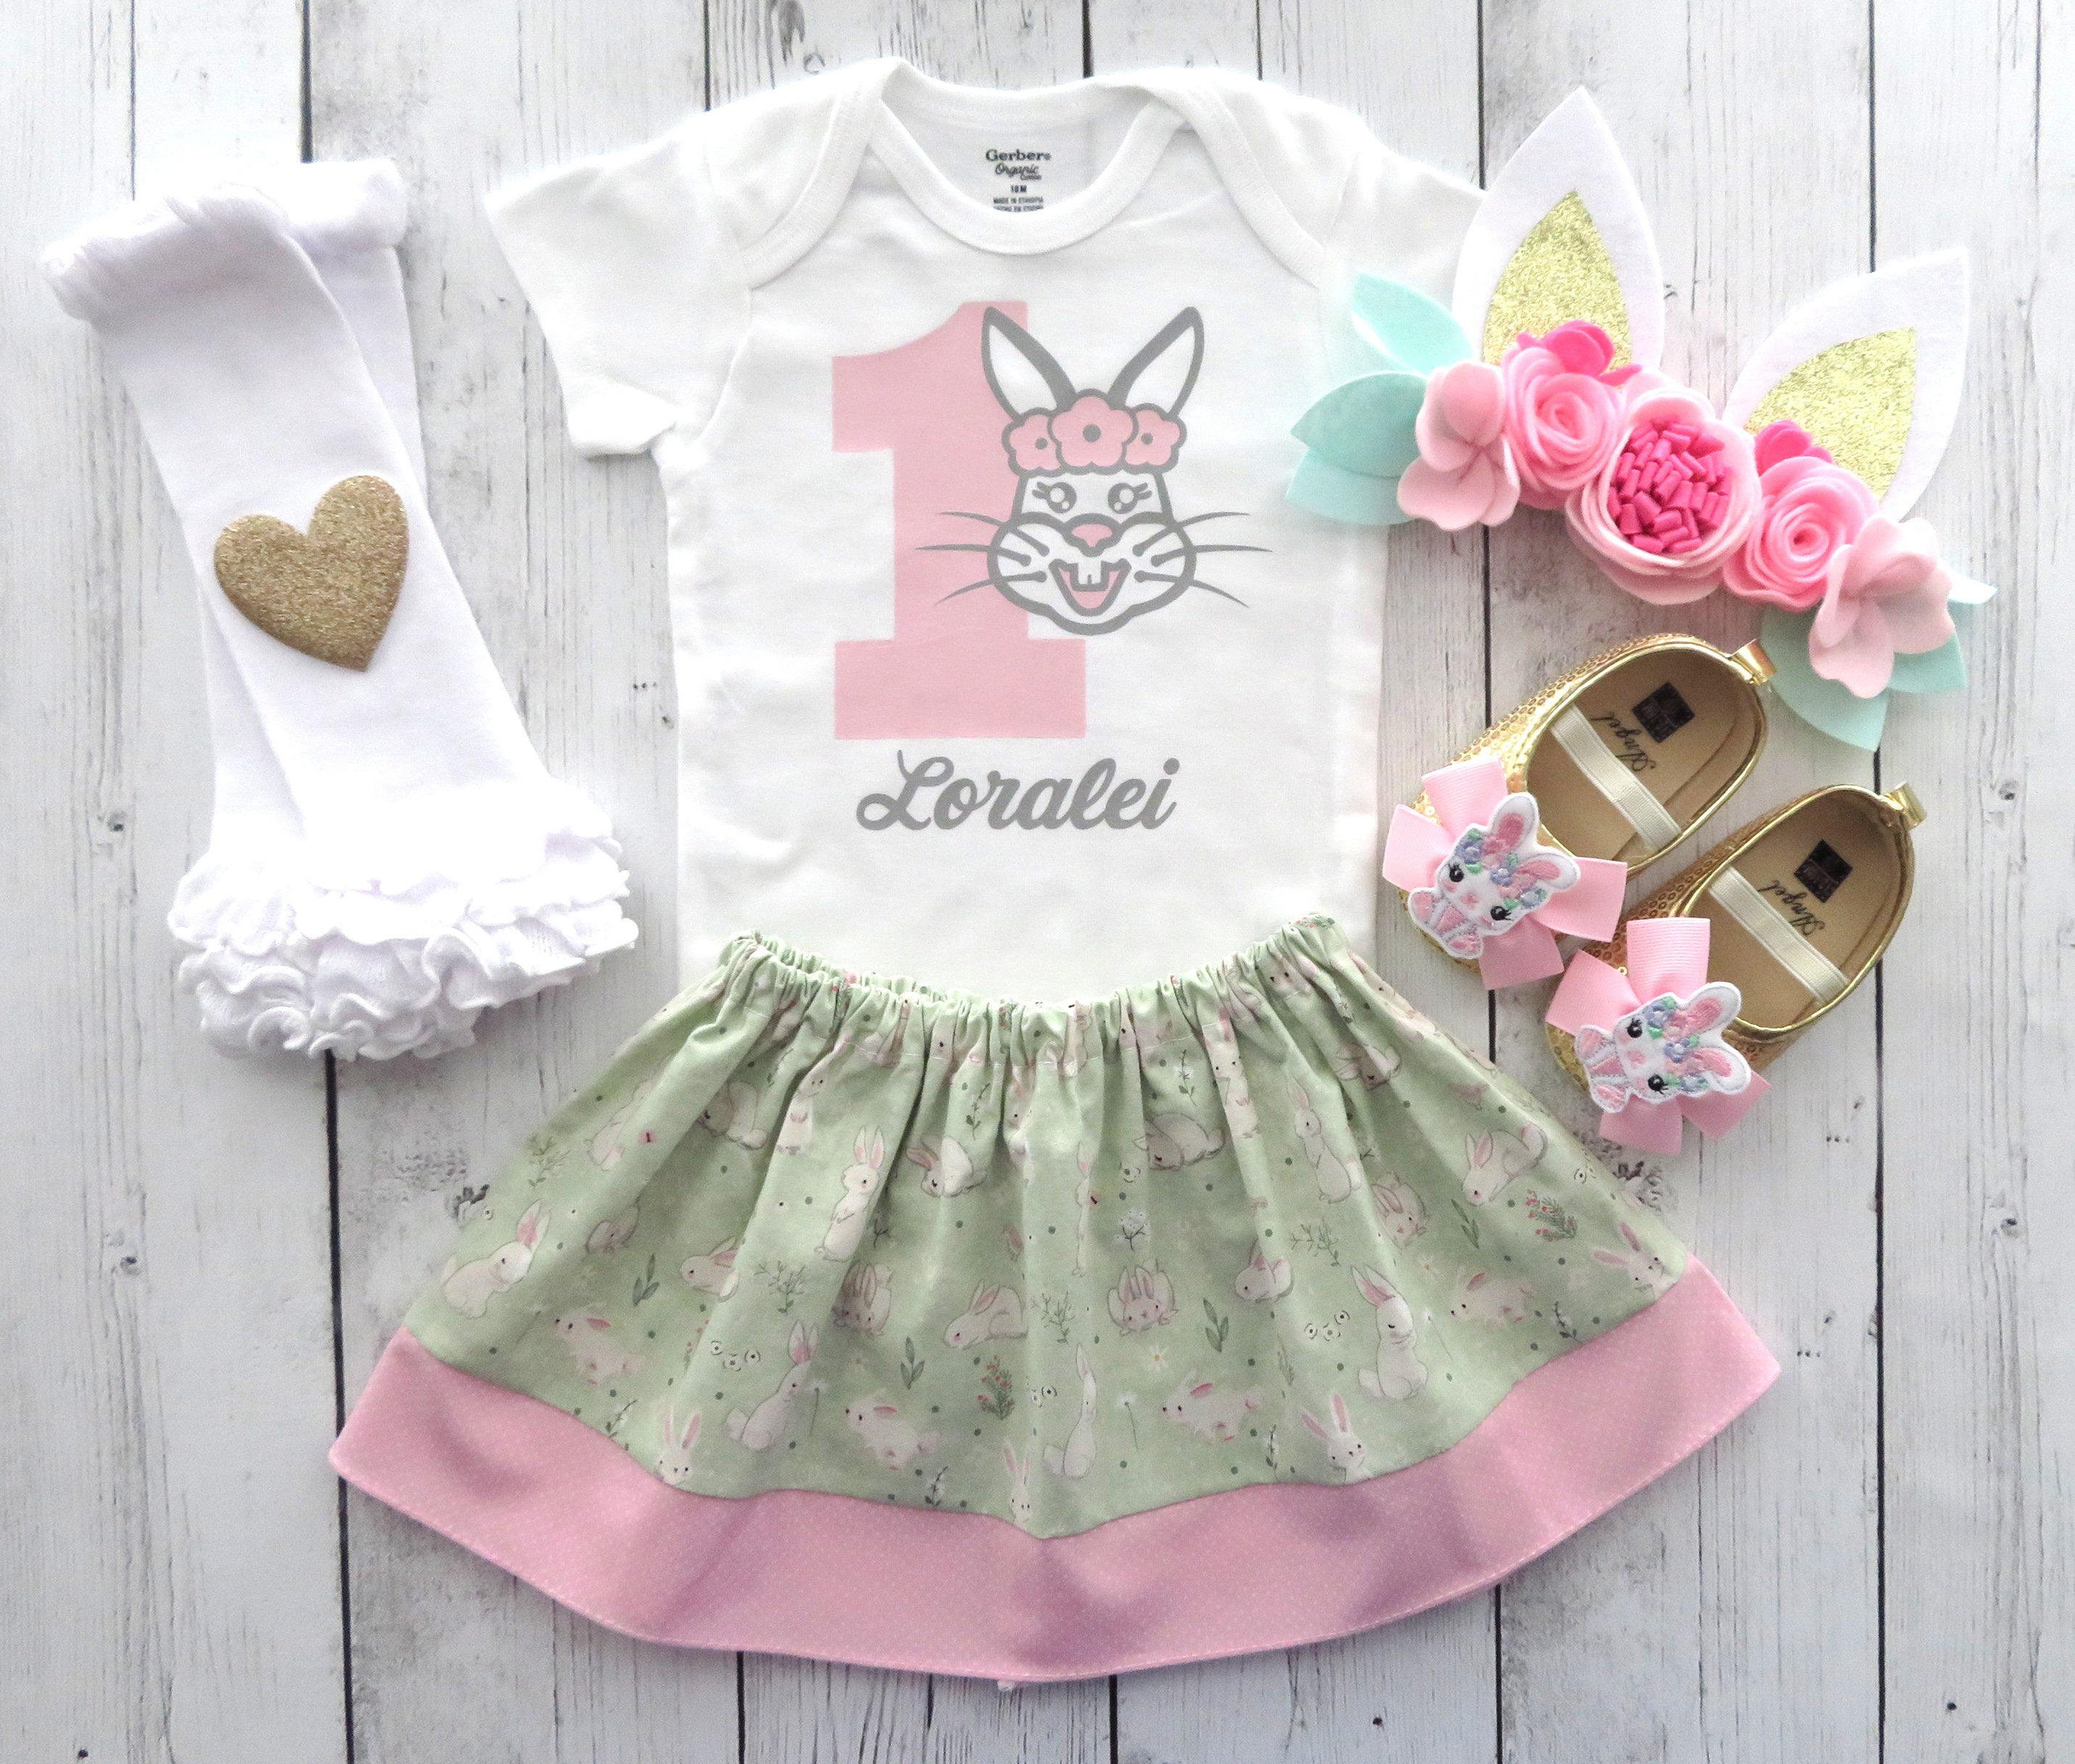 Bunny First Birthday Outfit in pink, mint and gold with bunny ears and bunny shoes - girl 1st bday outfit, some bunny is one, personalized